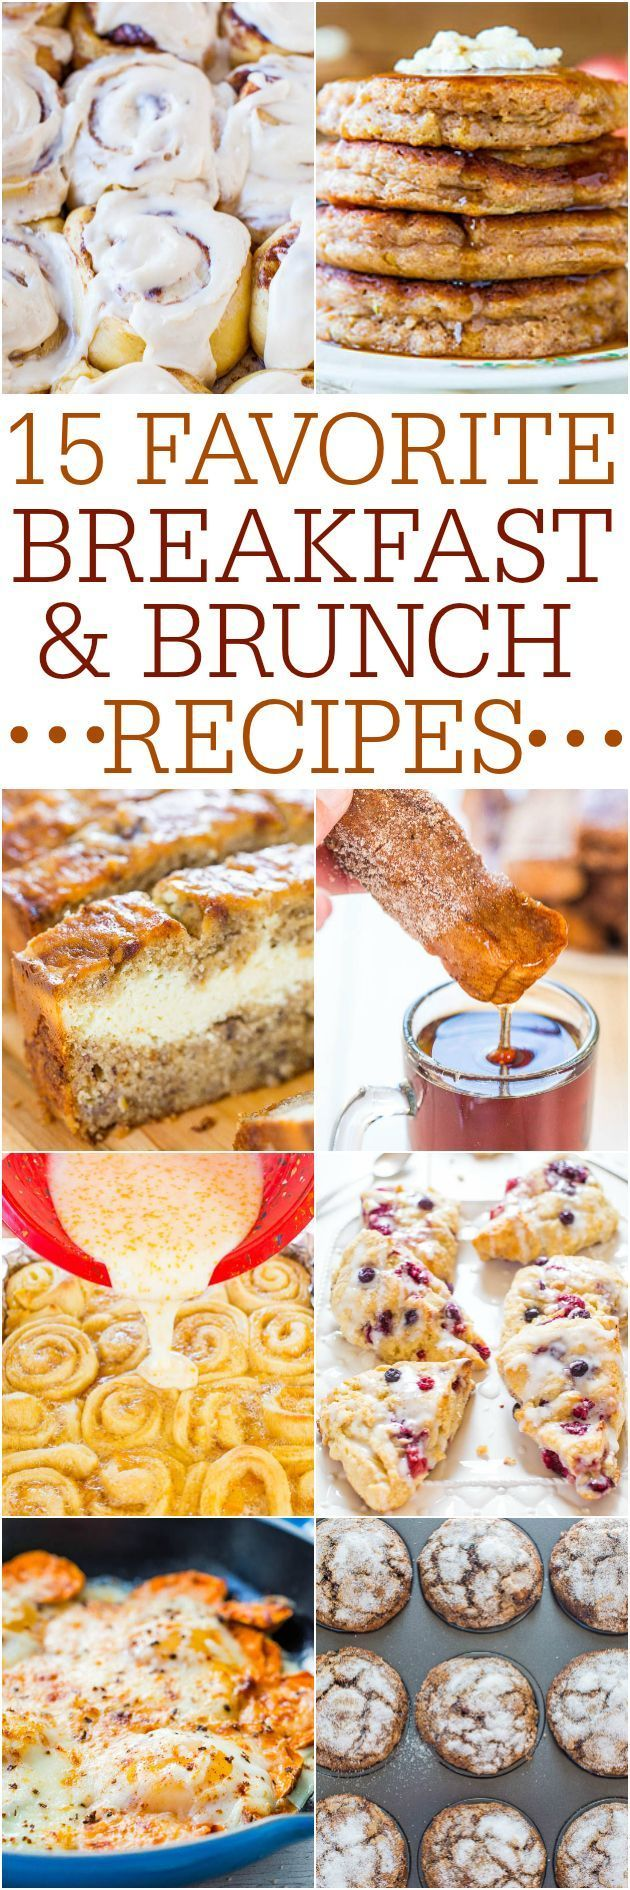 15 Favorite Breakfast and Brunch Recipes - Fast and easy tried-and-true recipes that everyone will love!! Great for holiday mornings and easy-breezy entertaining!!